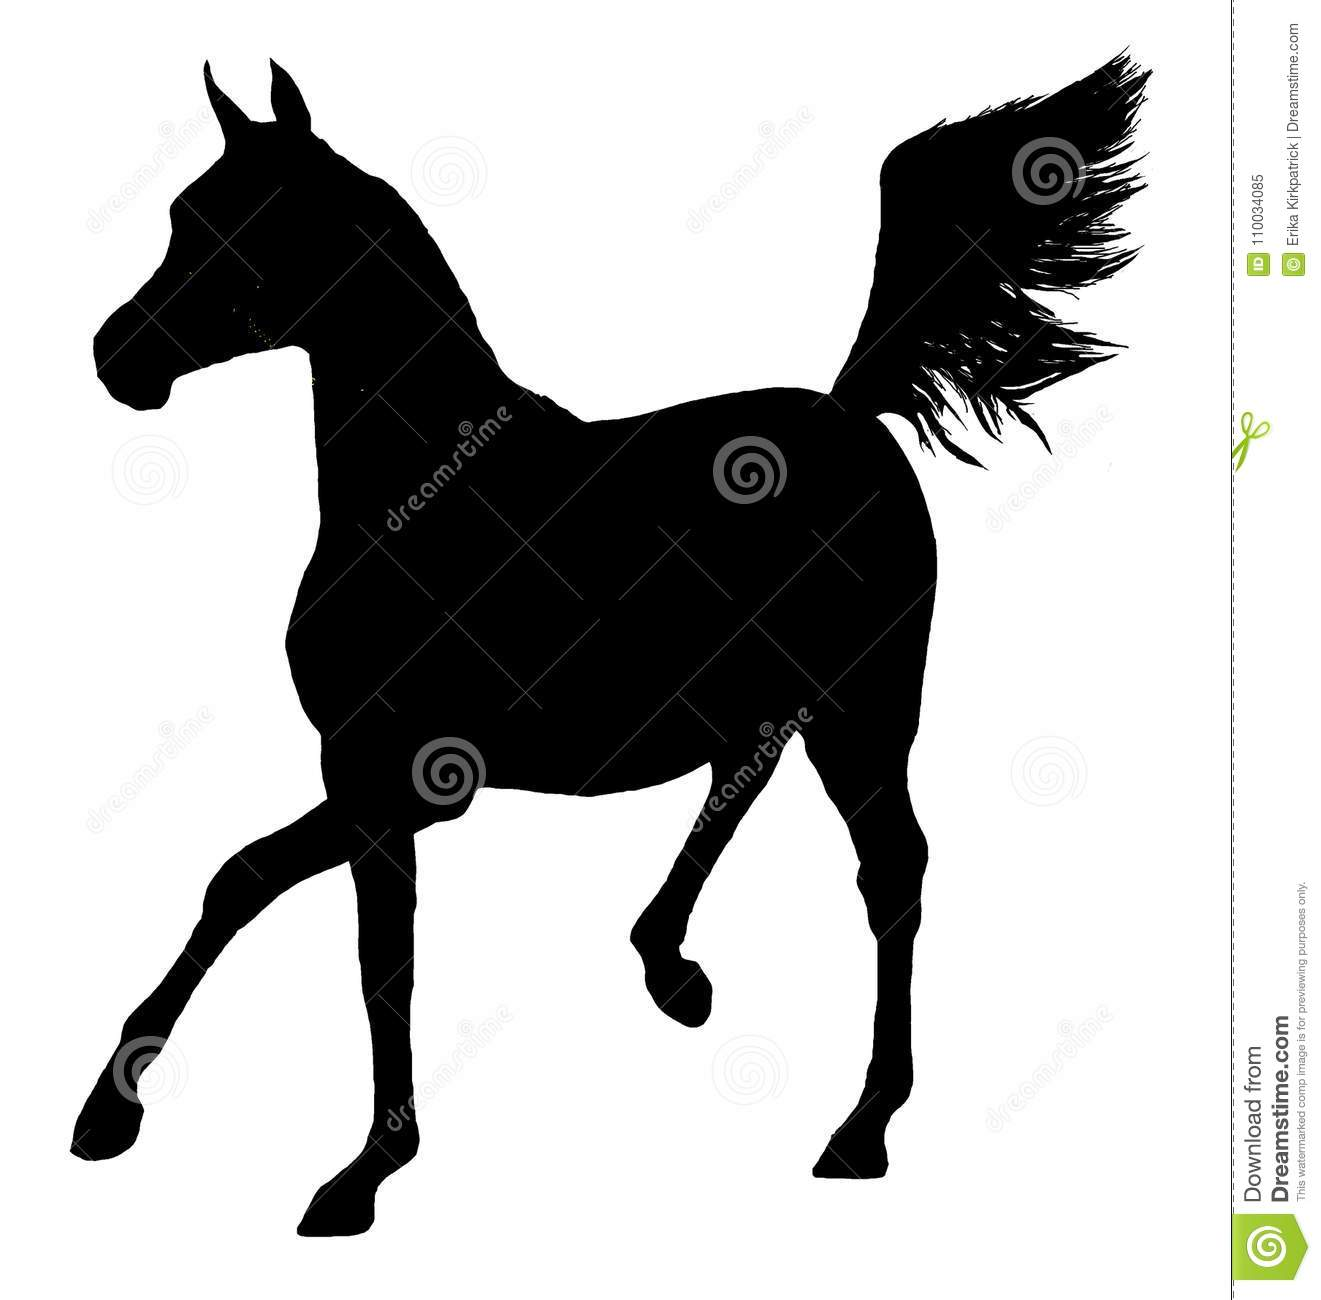 Arabian Horse Dressage Stock Illustrations 294 Arabian Horse Dressage Stock Illustrations Vectors Clipart Dreamstime